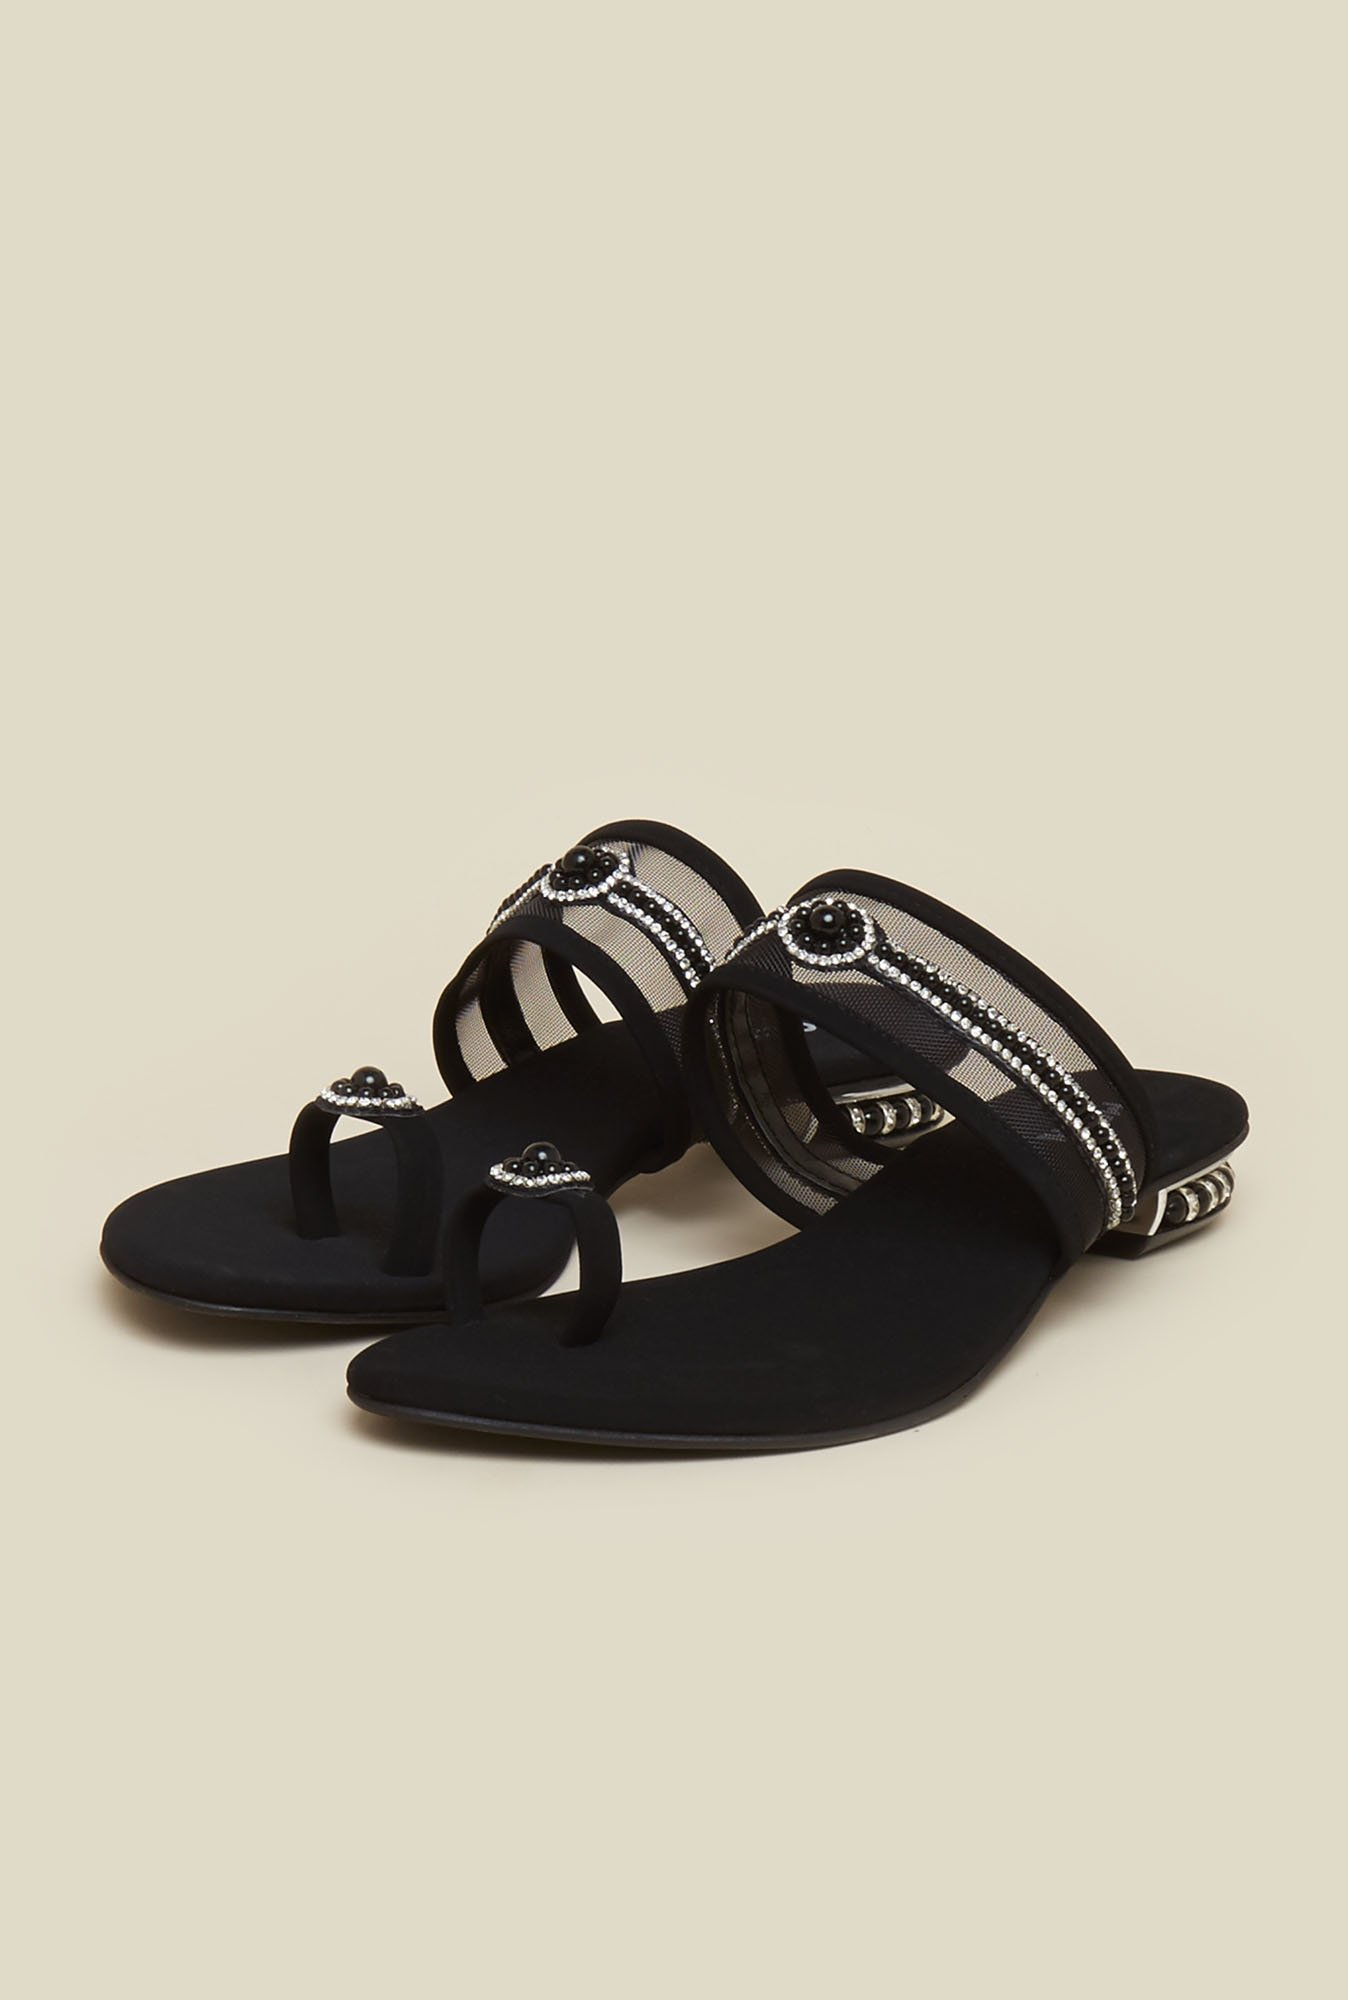 Mochi Black Toe Ring Flat Sandals